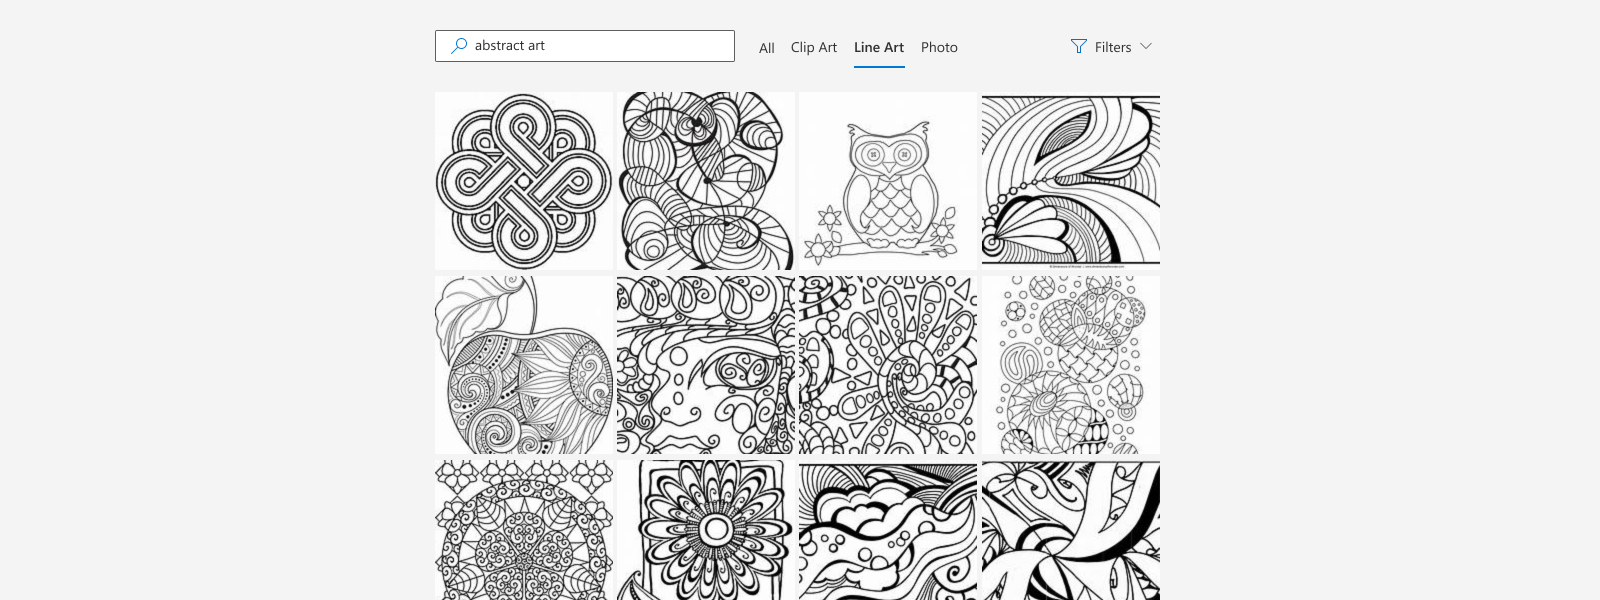 Illustration of refining image search results by image type.